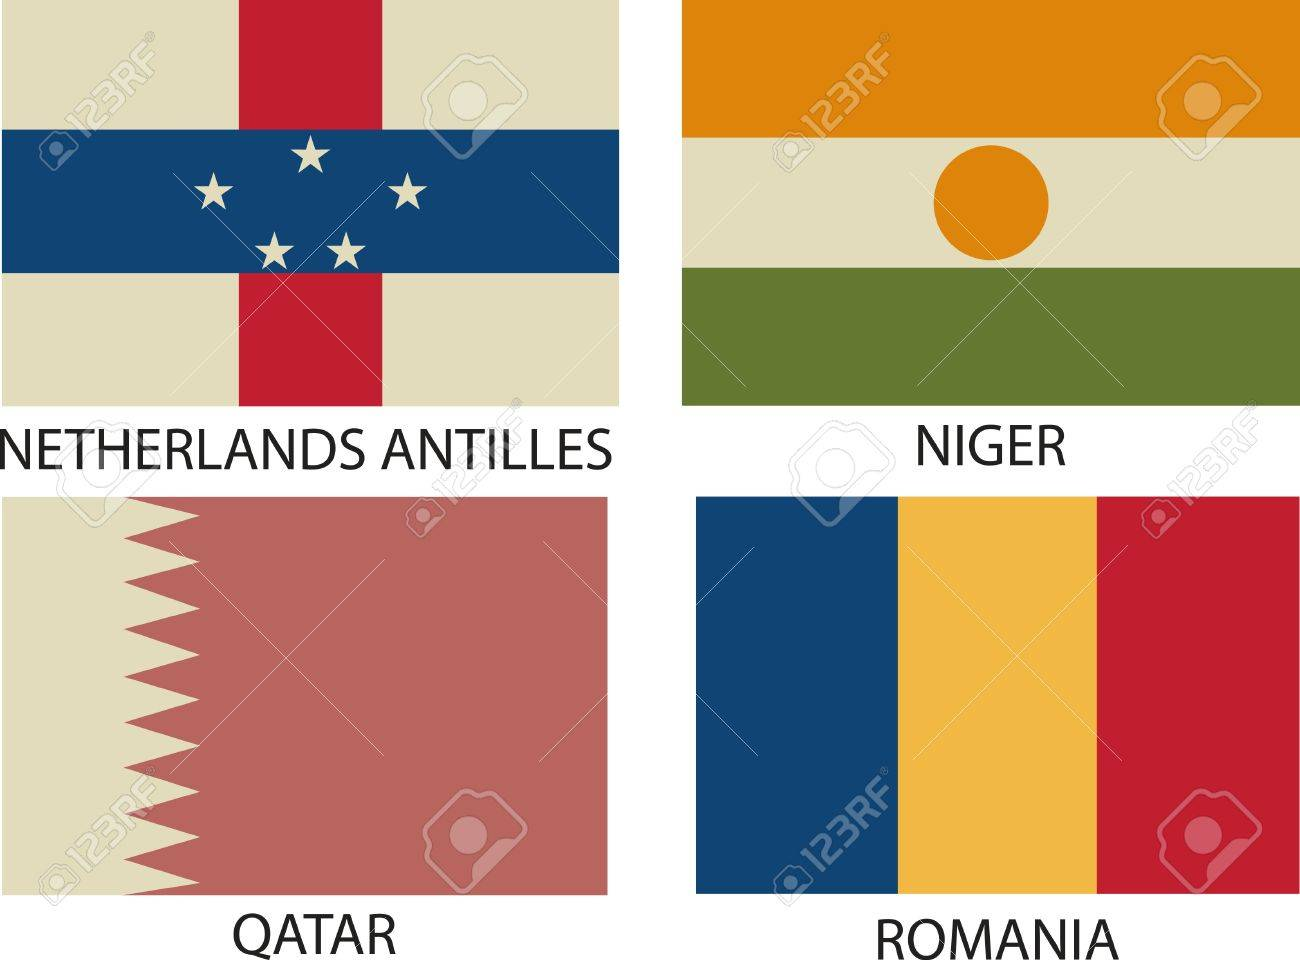 National Flags Symbol Illustrator,  Vintage Style Stock Vector - 18250186